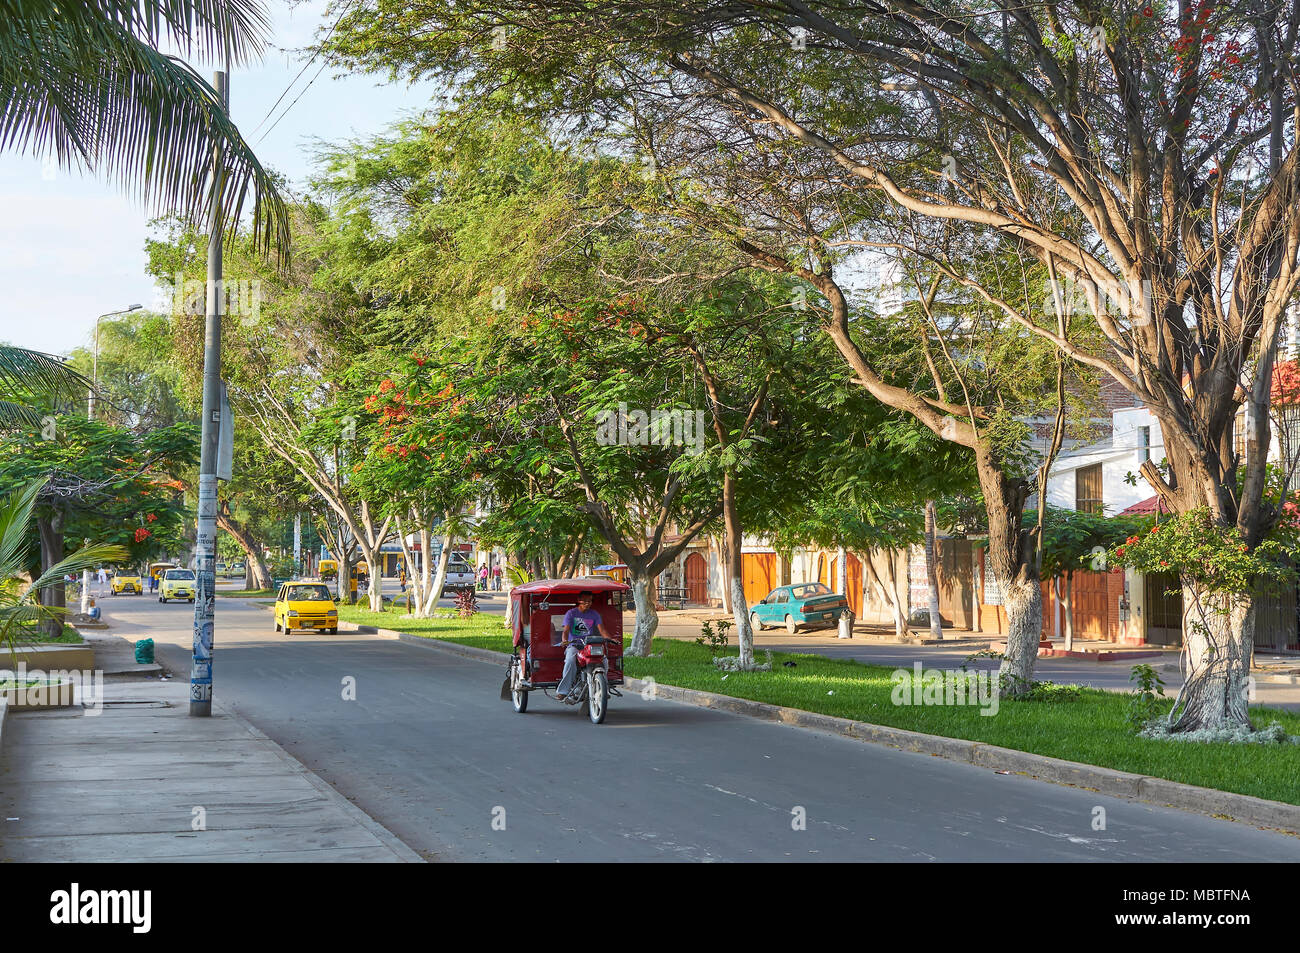 A motorcycle Taxi, one of the several thousand that can be found in this region of Peru, in the Coastal City of Paita in the Piura Region of Peru, Sou - Stock Image